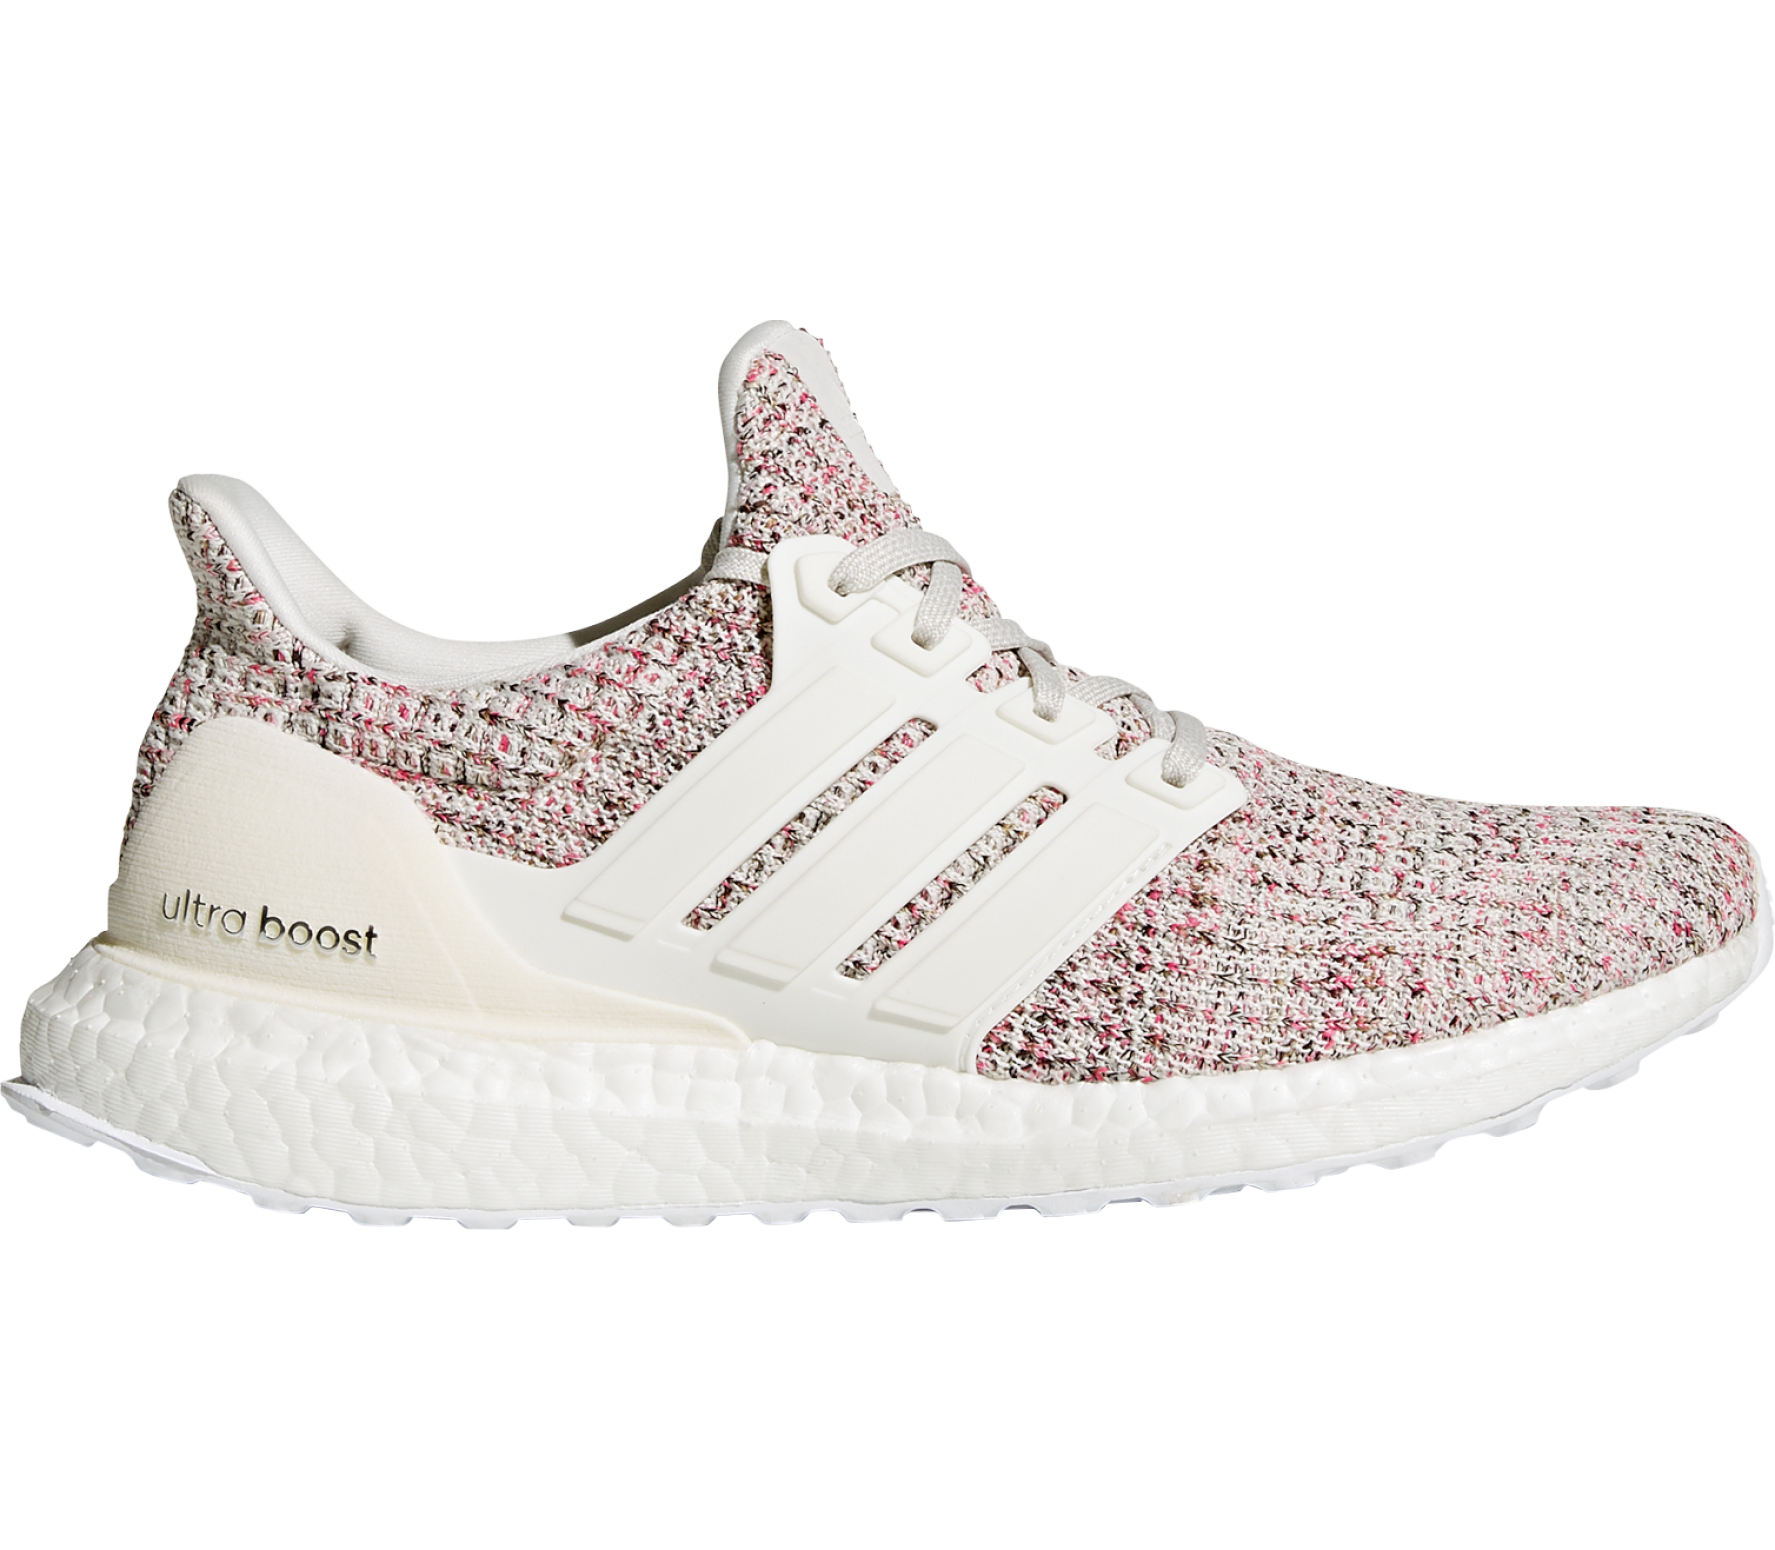 new concept ff618 66b02 adidas Performance - UltraBoost Femmes chaussure de course (rouge)